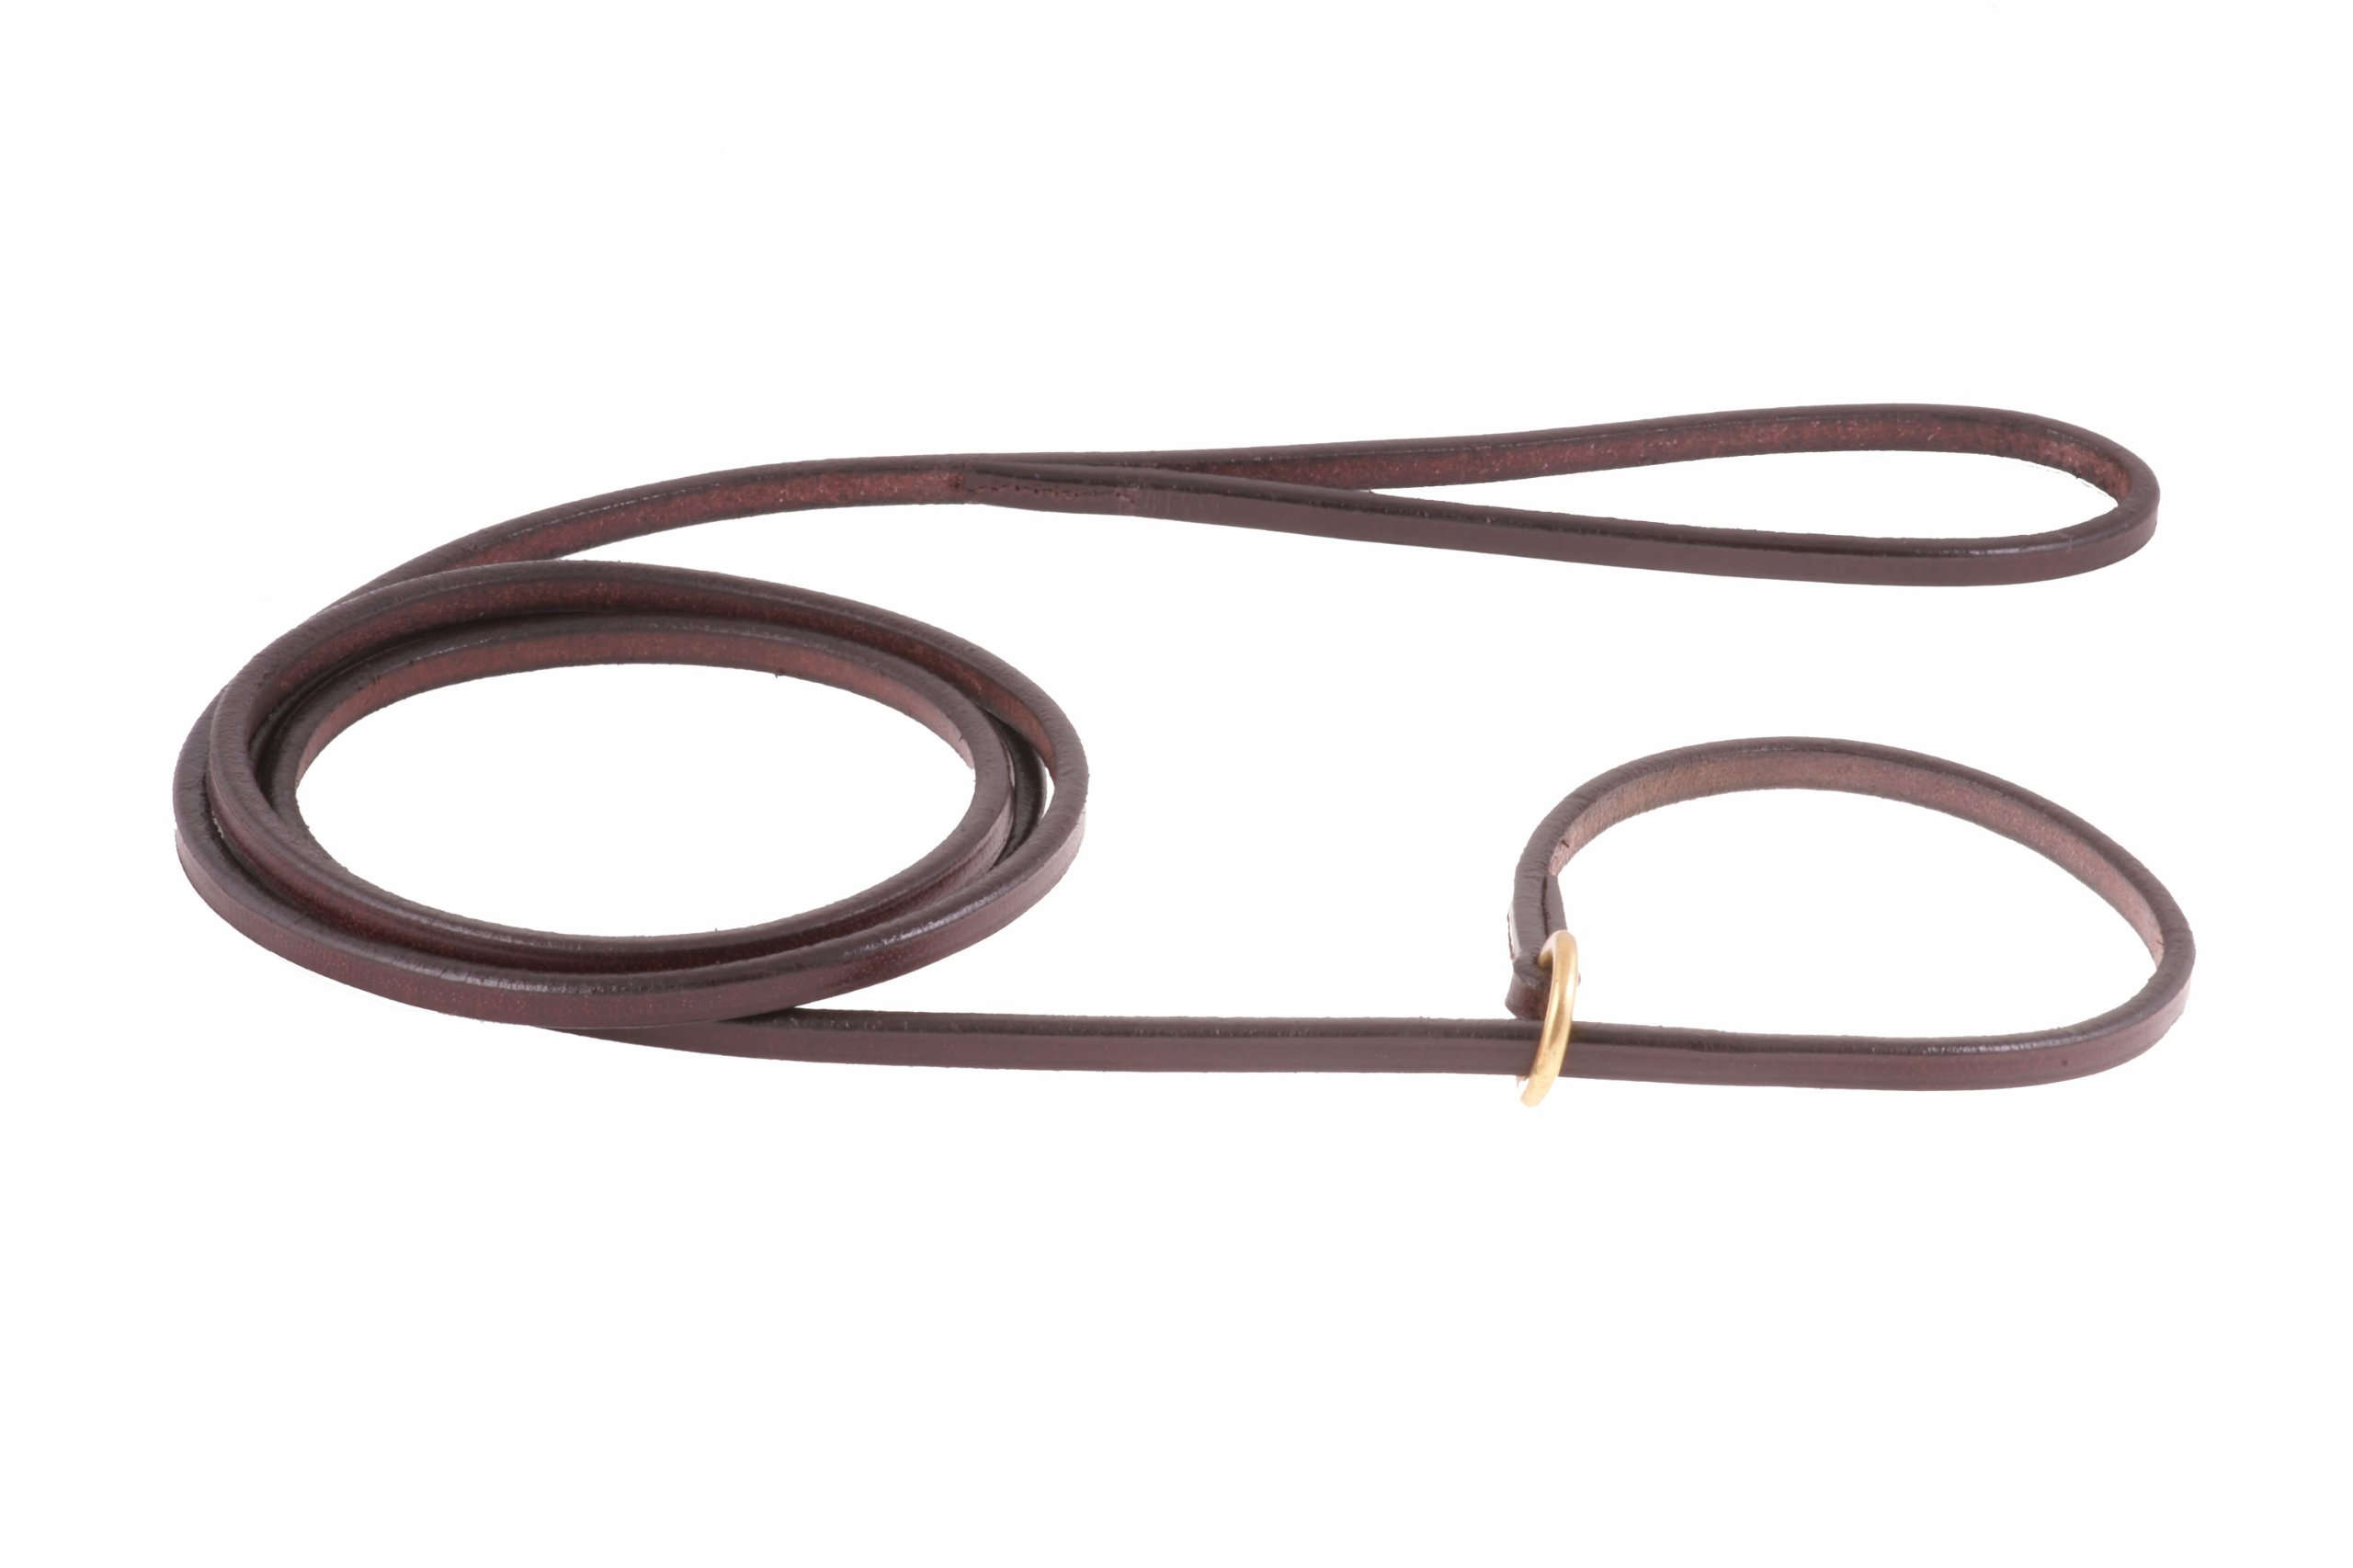 Alvalley Flat Slip Lead for Dogs 1/4 in x 6ft